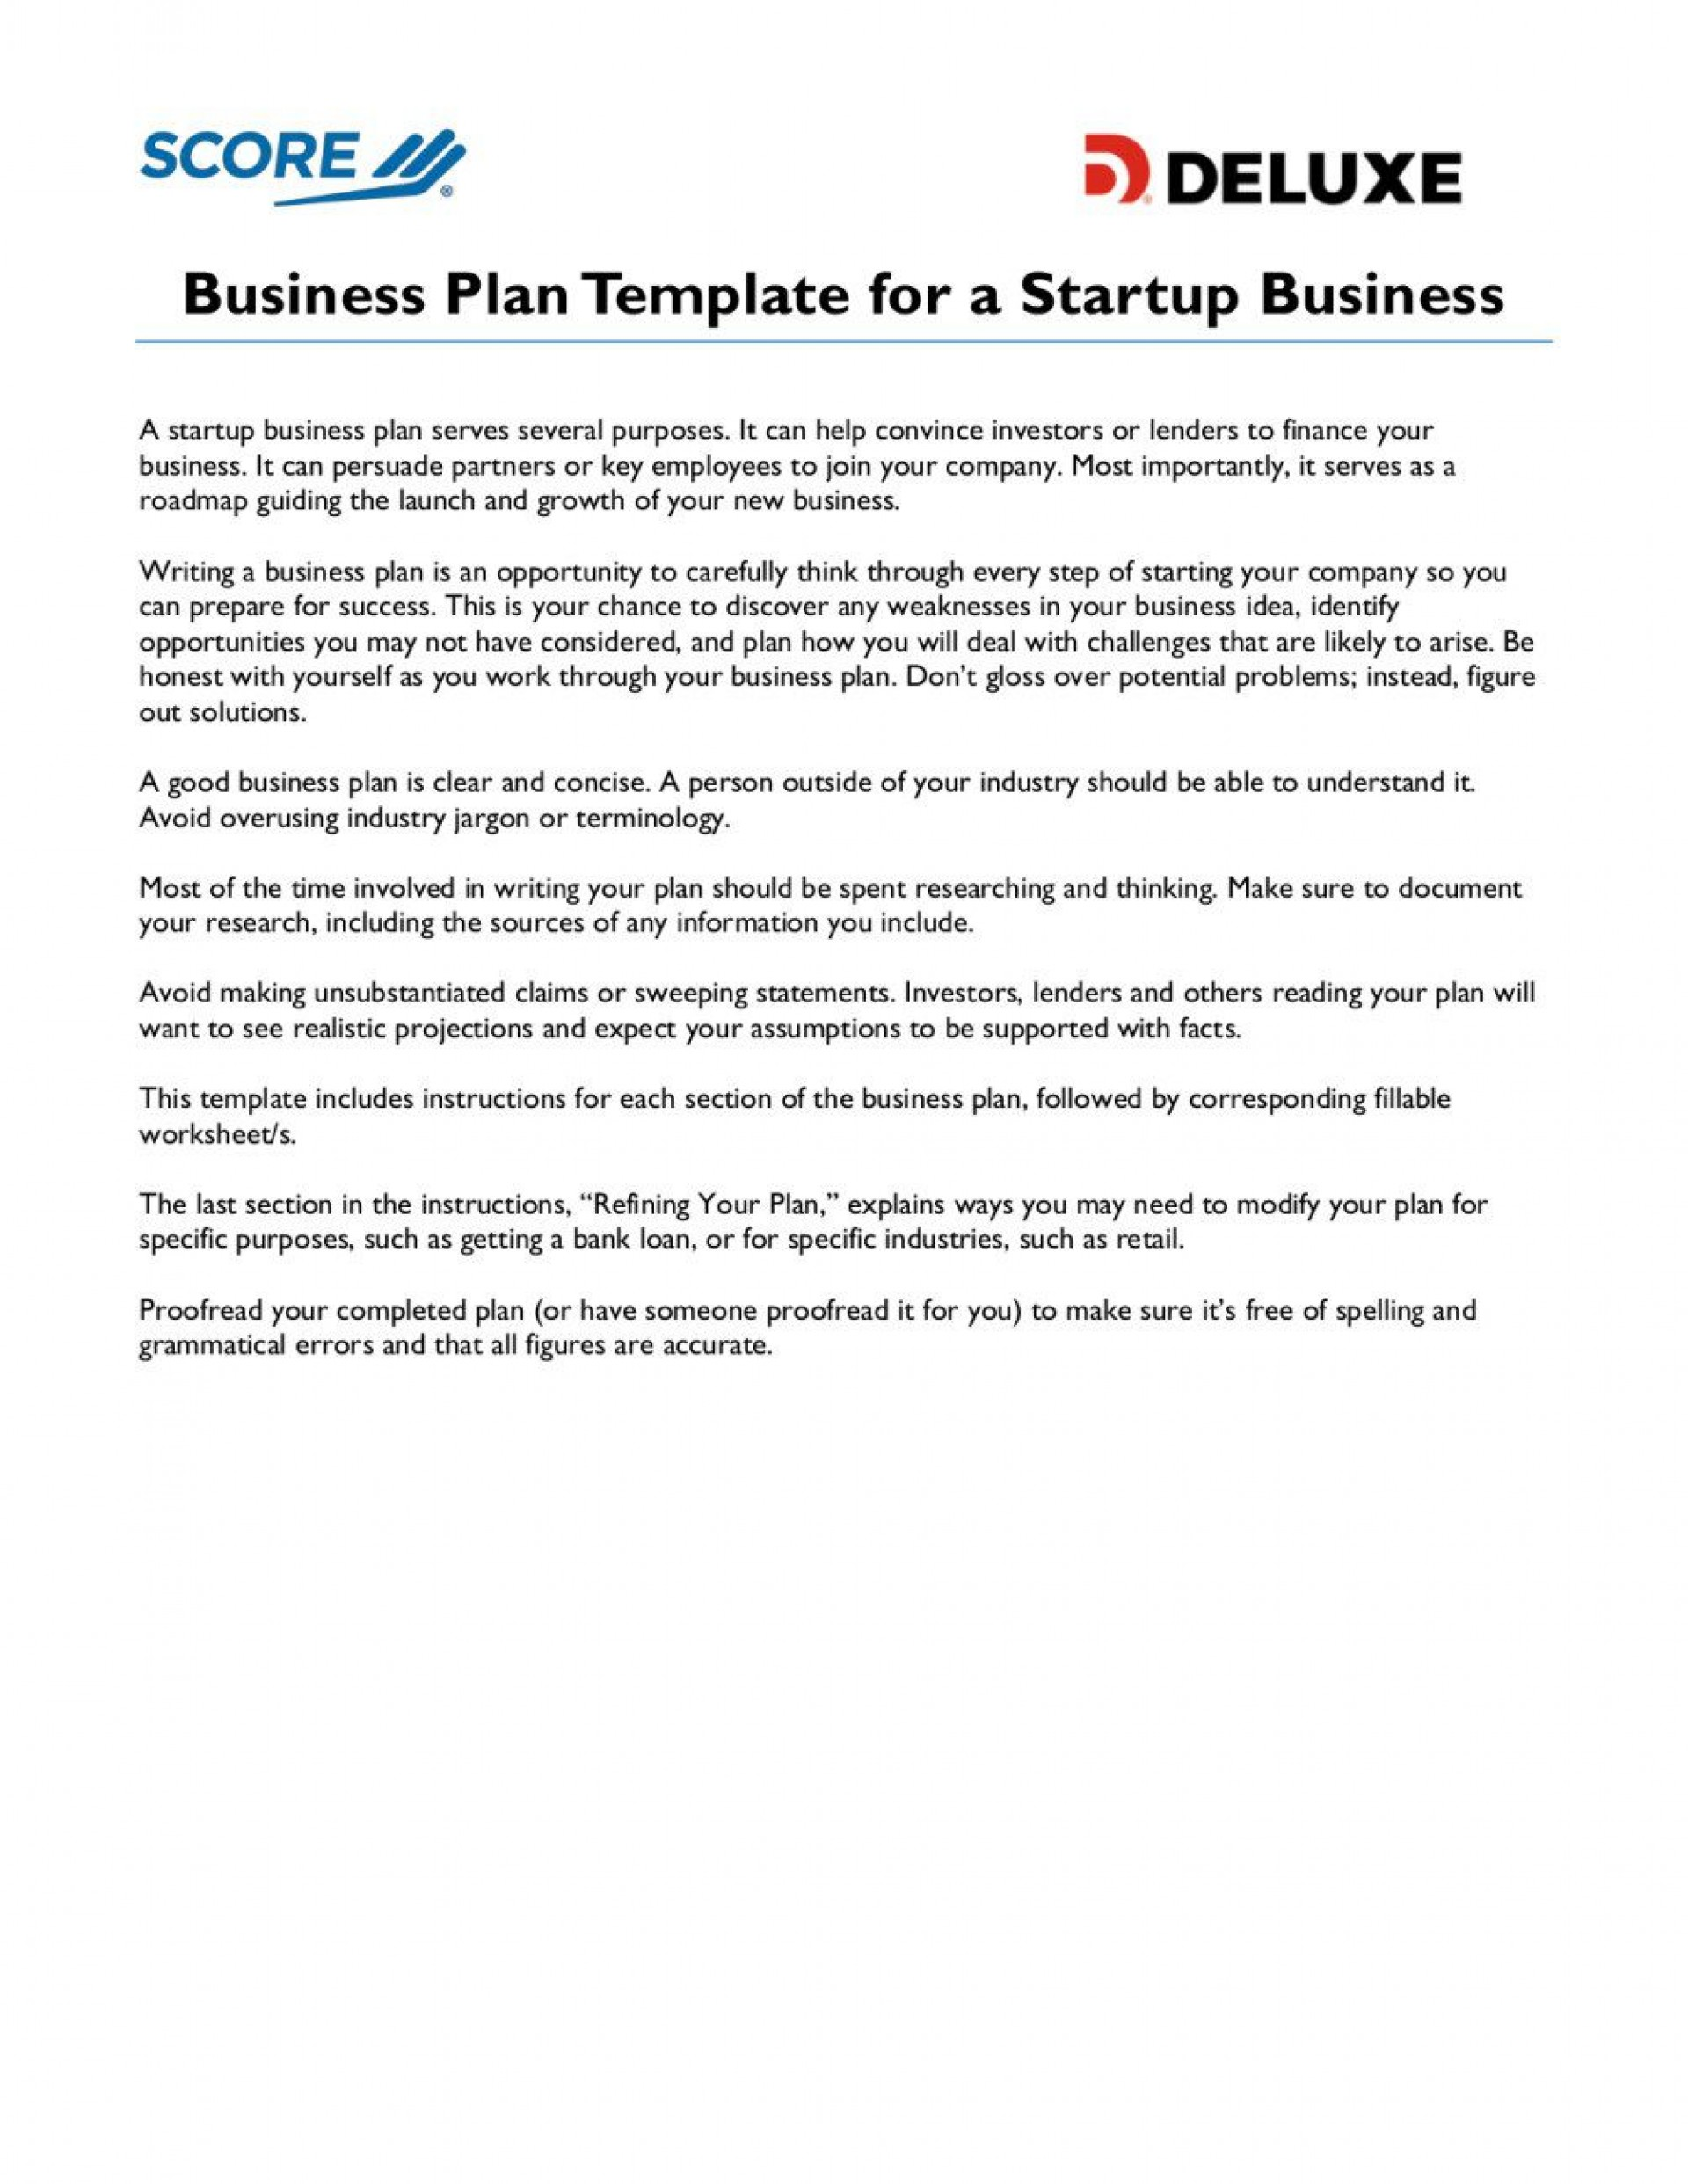 008 Surprising Score Deluxe Busines Plan Template High Definition 1920